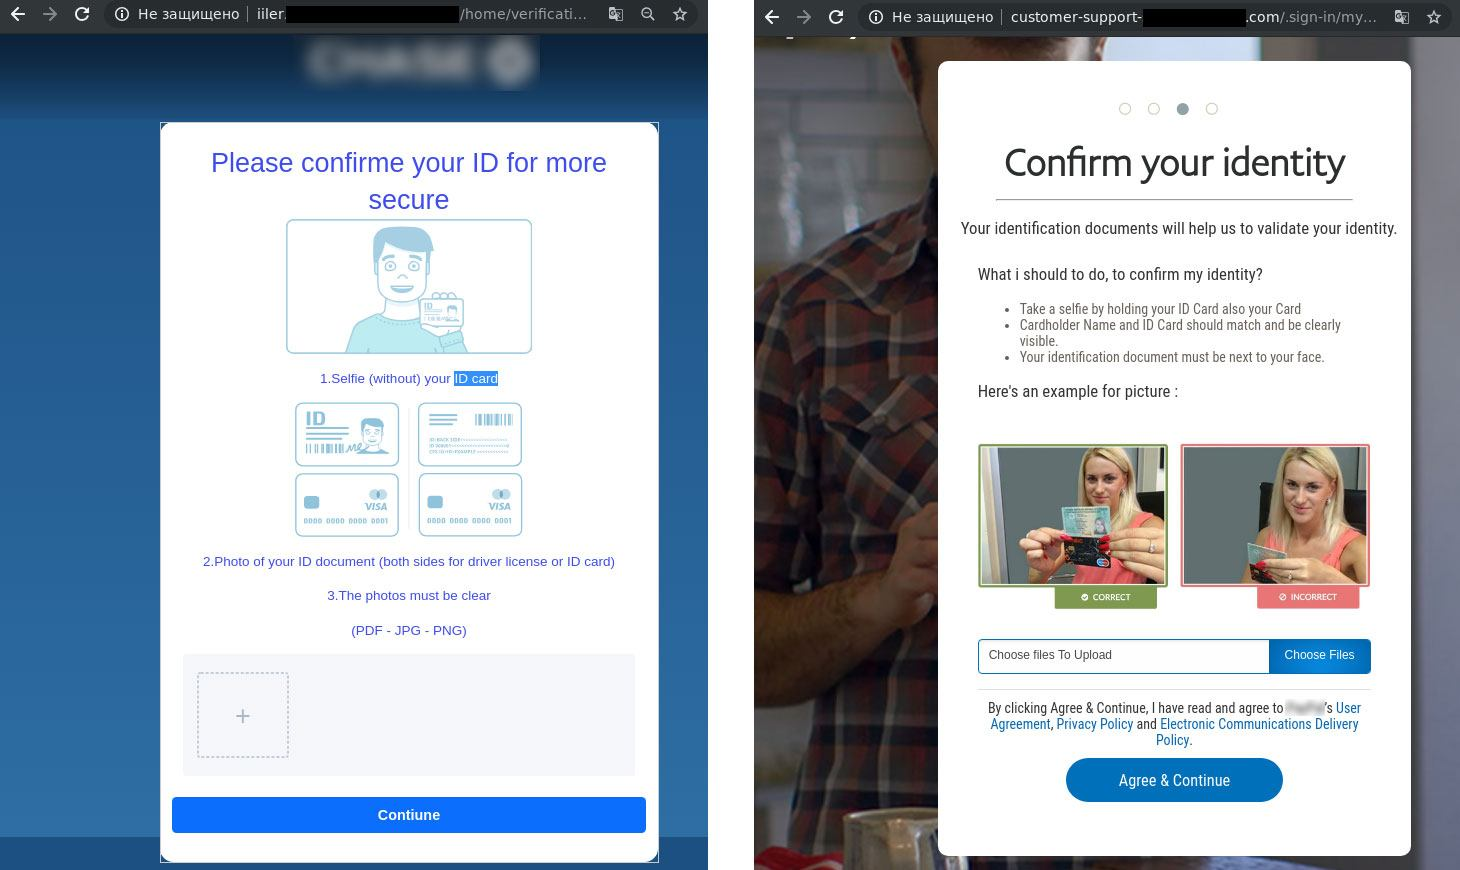 Scammers pretending to be payment system and bank, asking for a selfie upload with document